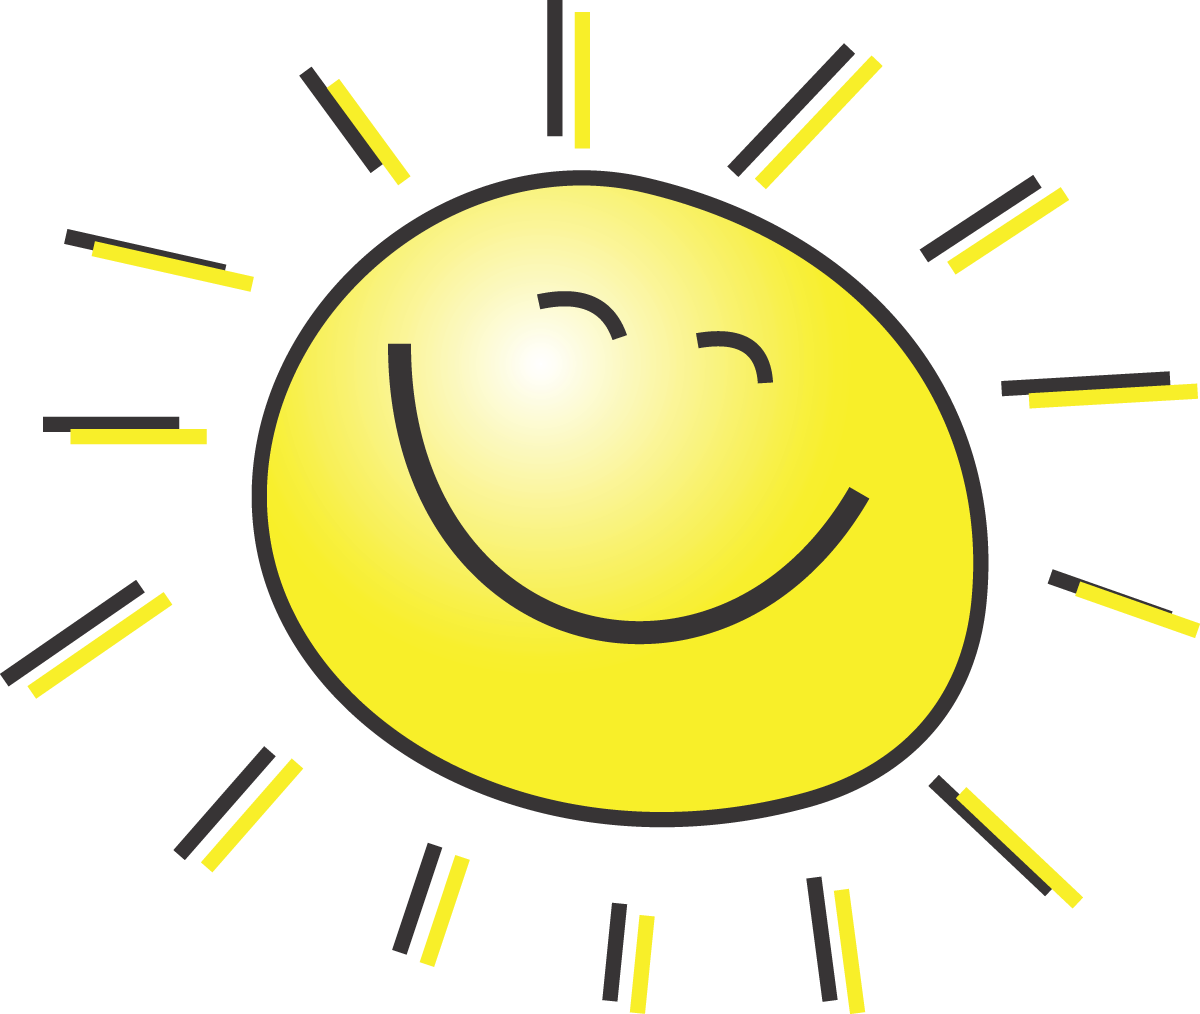 Free Summer Clipart Illustration Of A Ha-Free Summer Clipart Illustration Of A Happy Smiling Sun by 00015 .-18